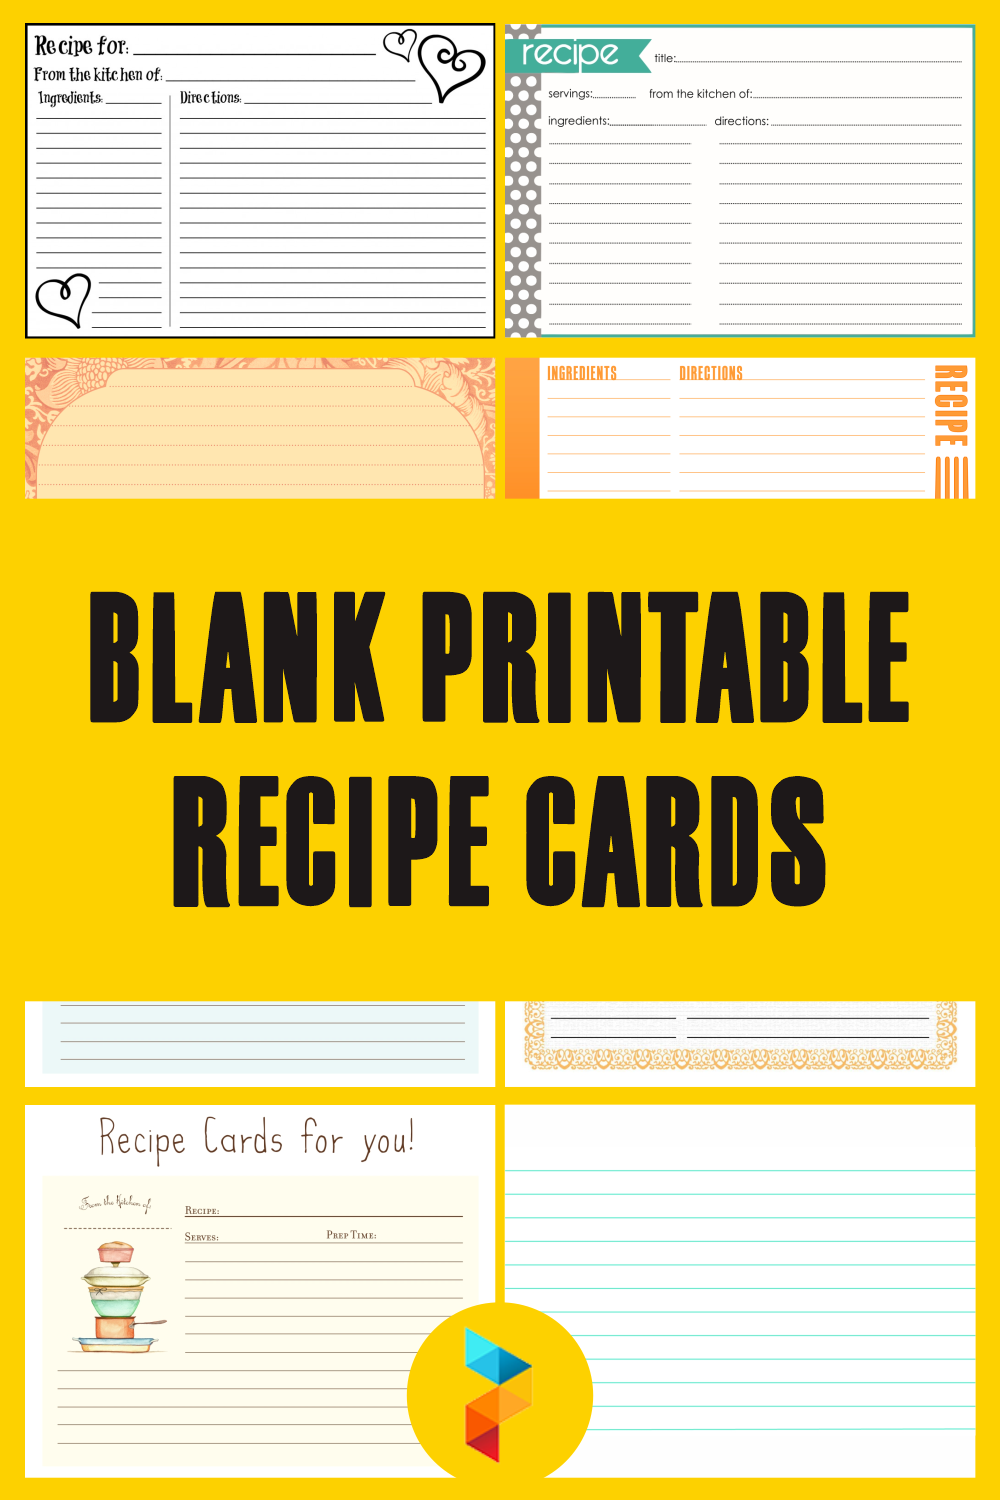 Blank Printable Recipe Cards